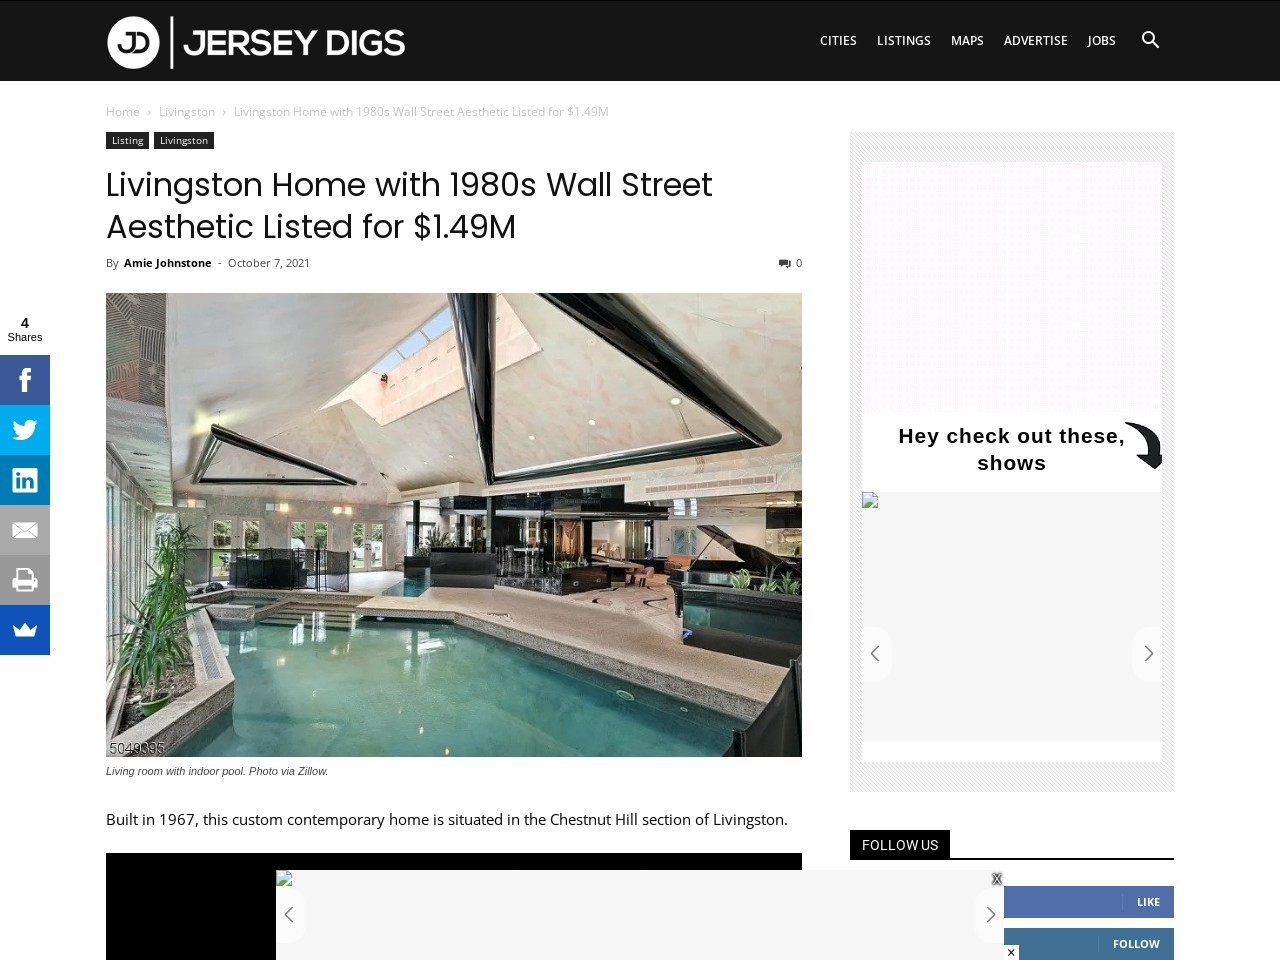 Livingston Home with 1980s Wall Street Aesthetic Listed for $1.49M